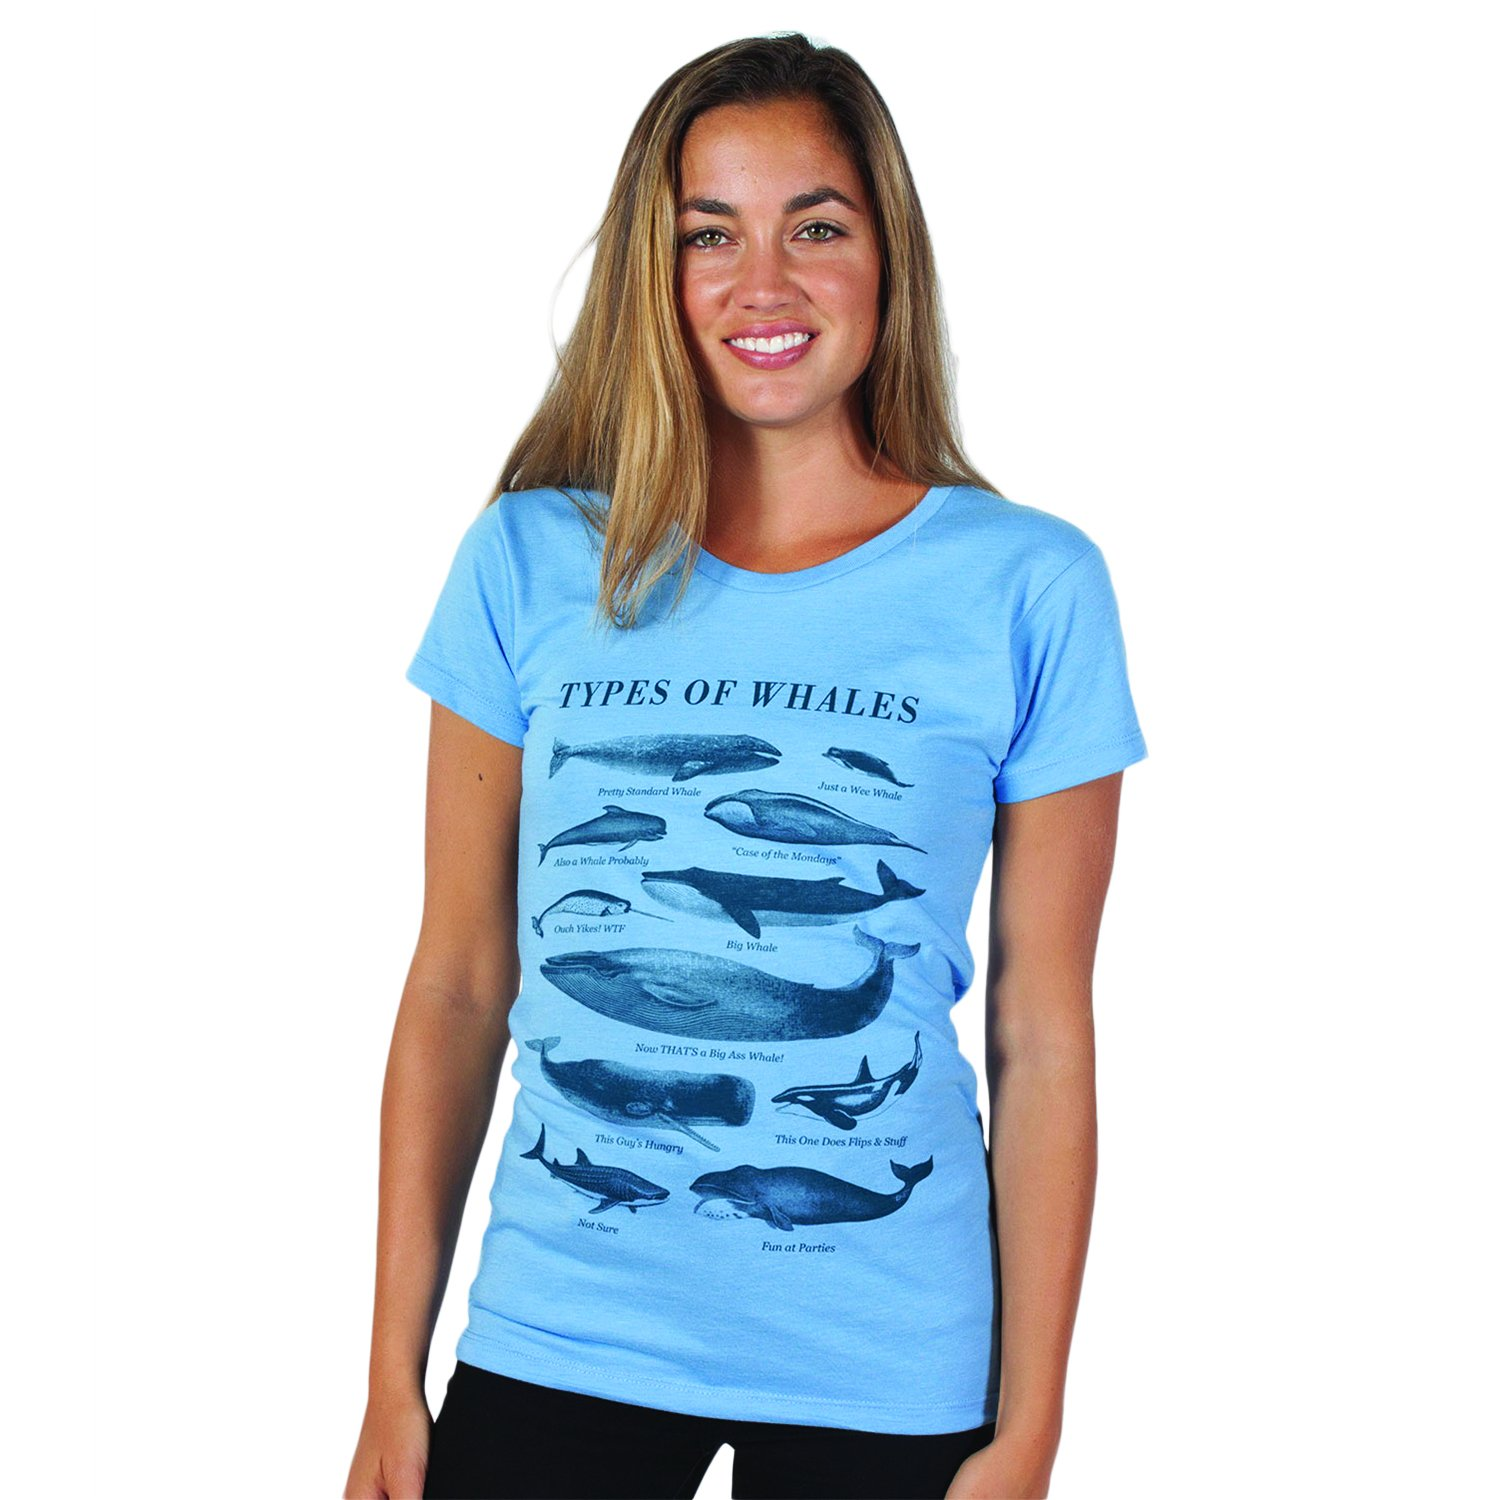 f3f0d9e4d Amazon.com: Headline Shirts Types of Whales Funny Graphic Screen Printed  Crewneck T-Shirt for Women: Clothing